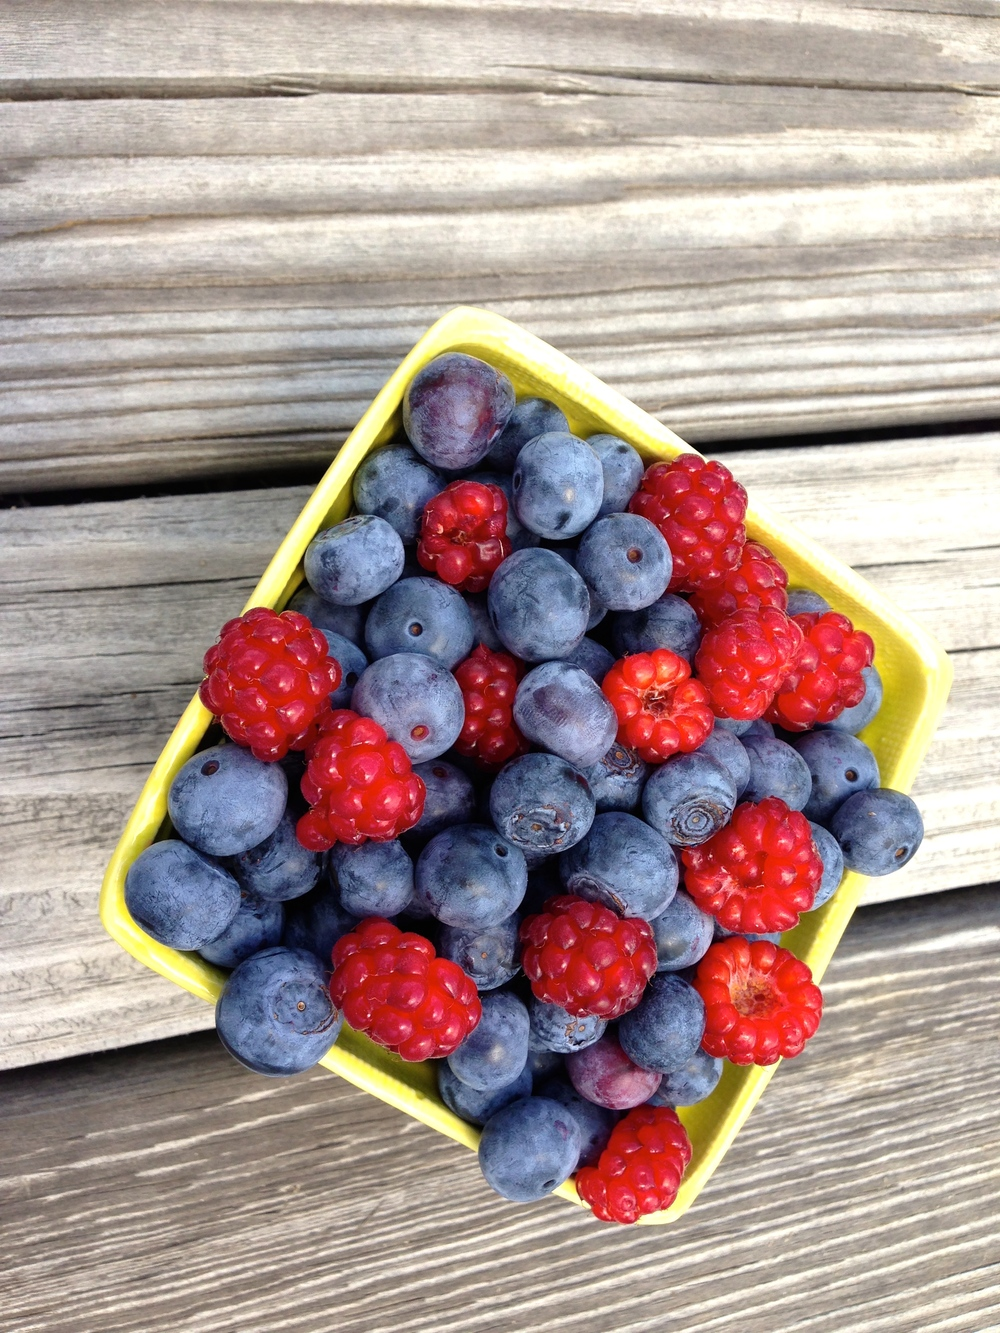 Is there anything more beautiful or more vibrant than freshly picked berries?